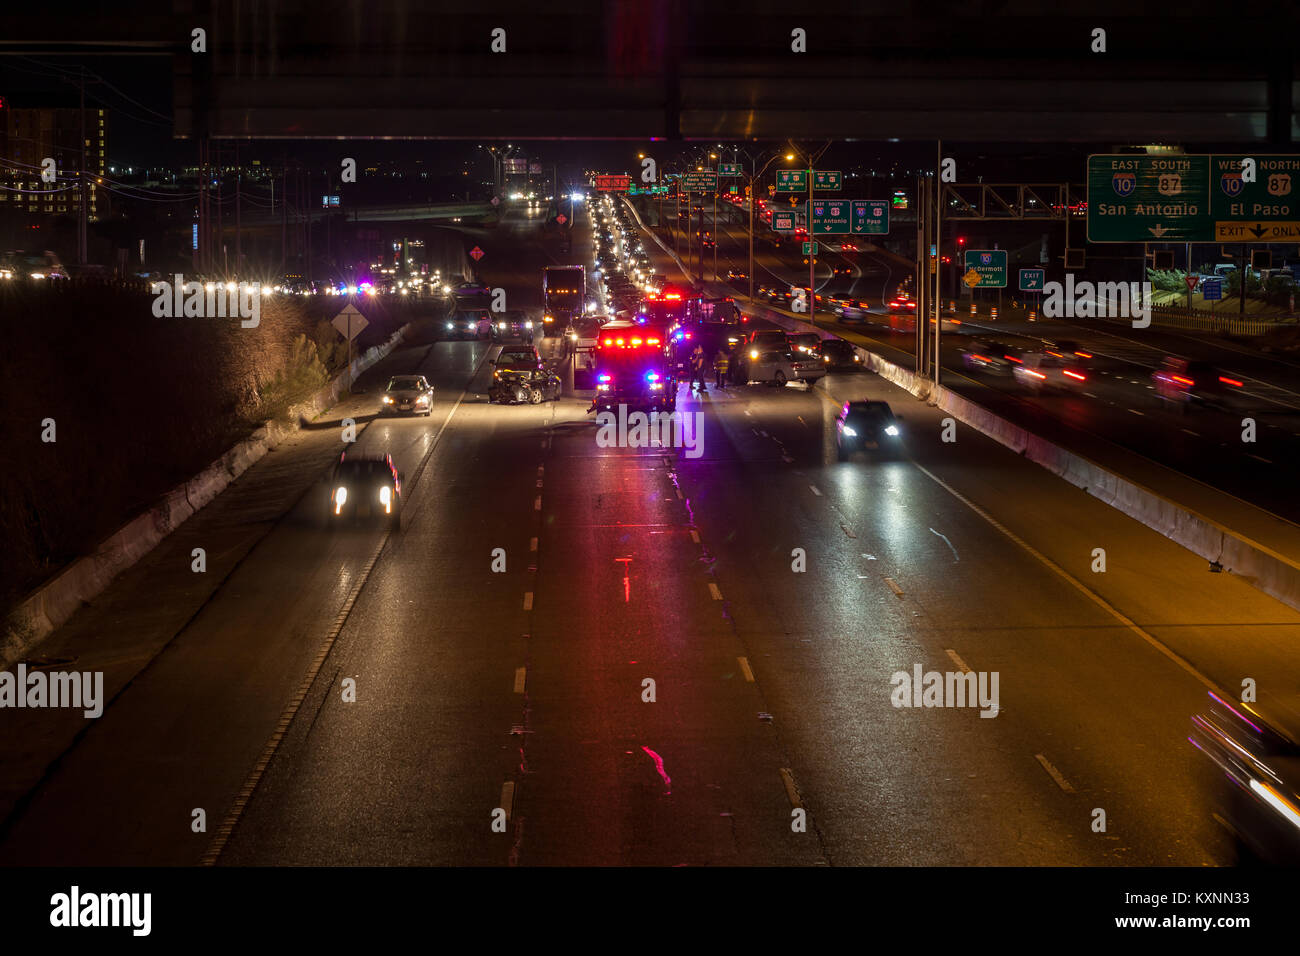 San Antonio, Texas, USA  10th Jan, 2018  Major traffic